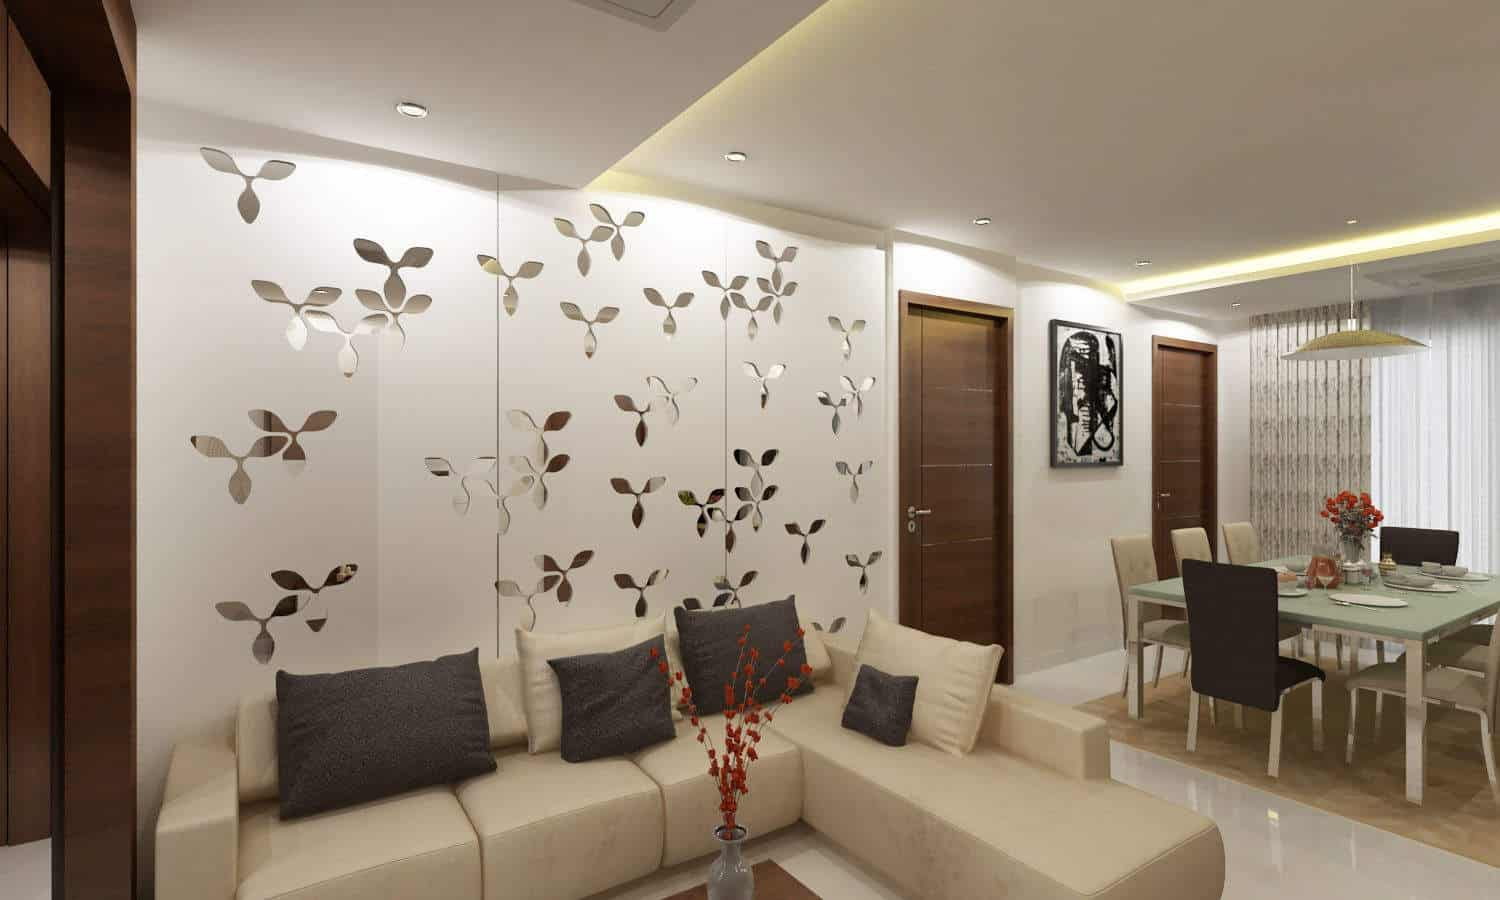 fedisa interior designer interior designer mumbai best online interior design websites craft design 7 photos karwan pune pictures images gallery rh justdial com